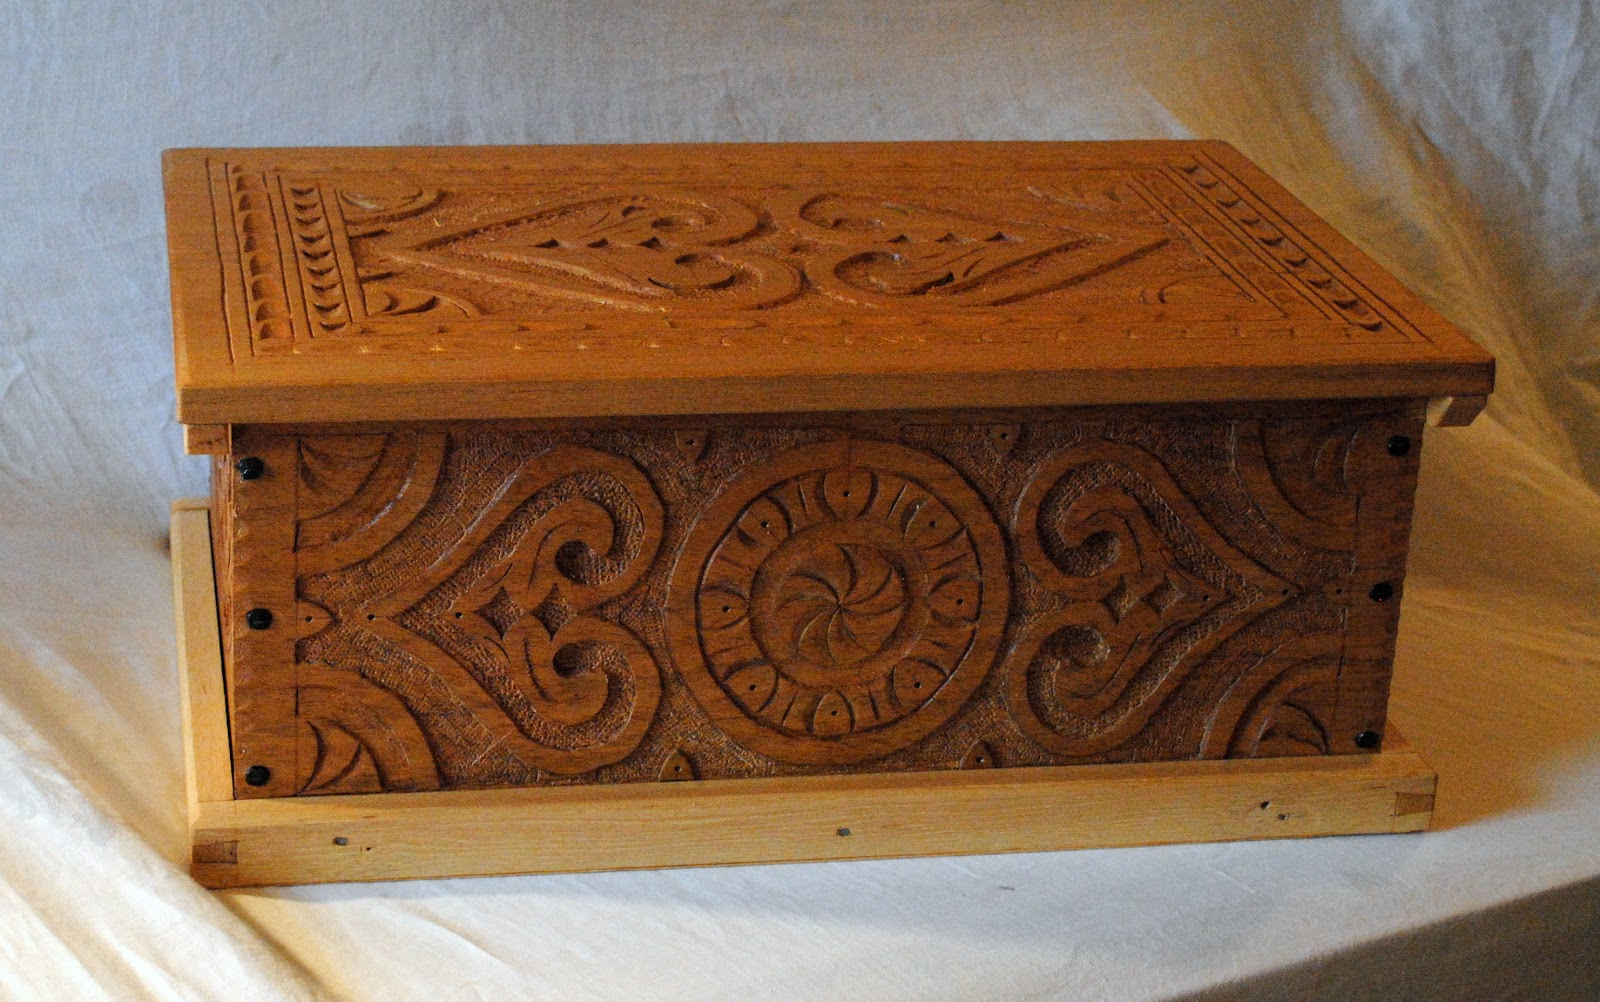 Final Pictures Of The Mahogany Carved Box